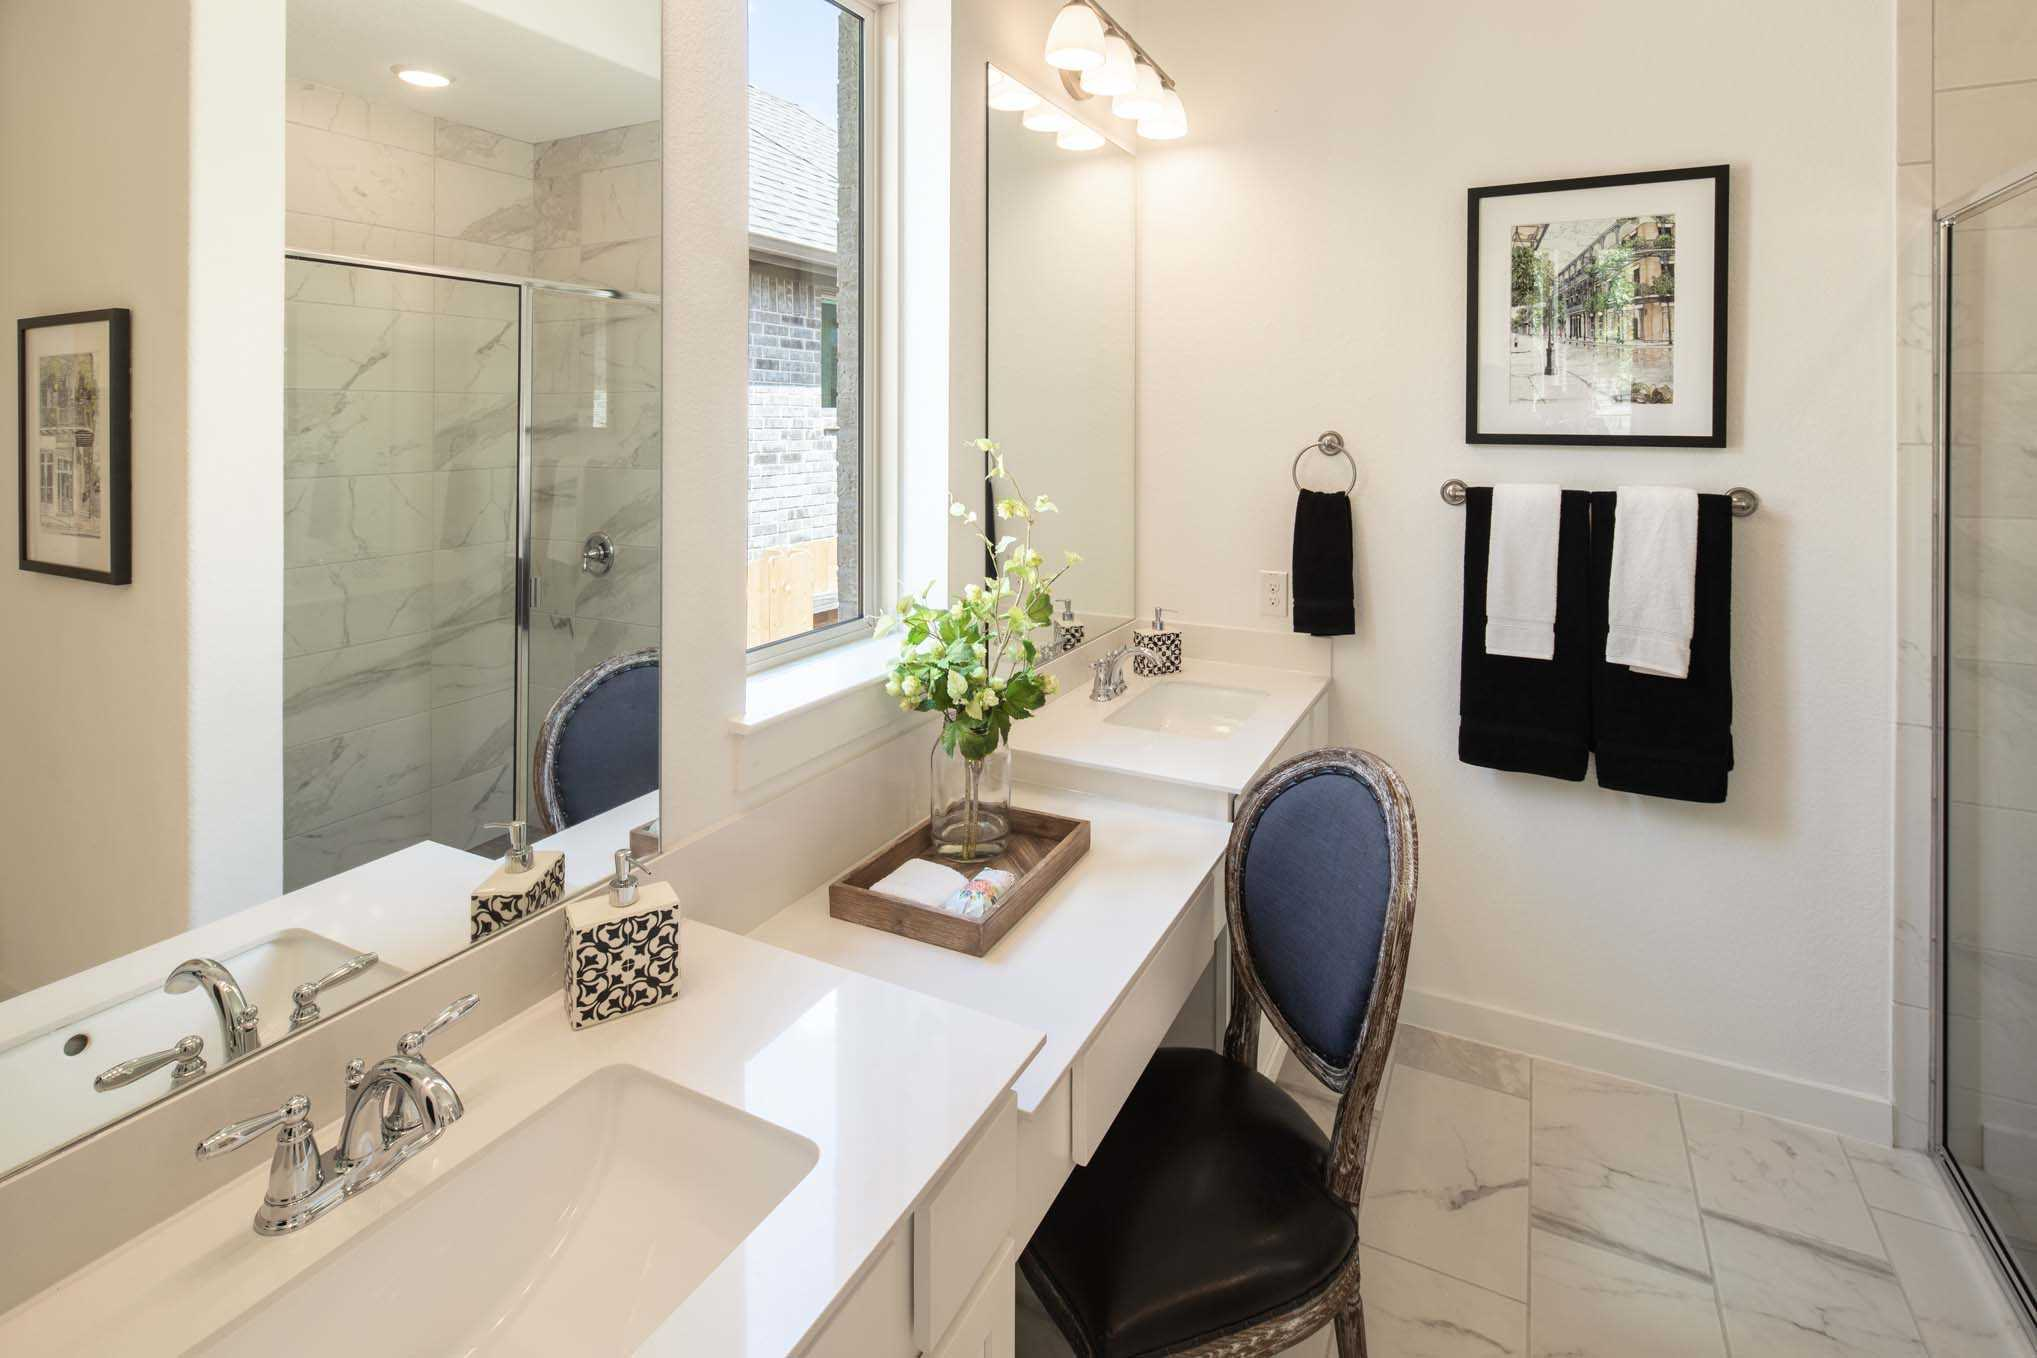 Bathroom featured in the Plan Fairhall By Highland Homes in Dallas, TX